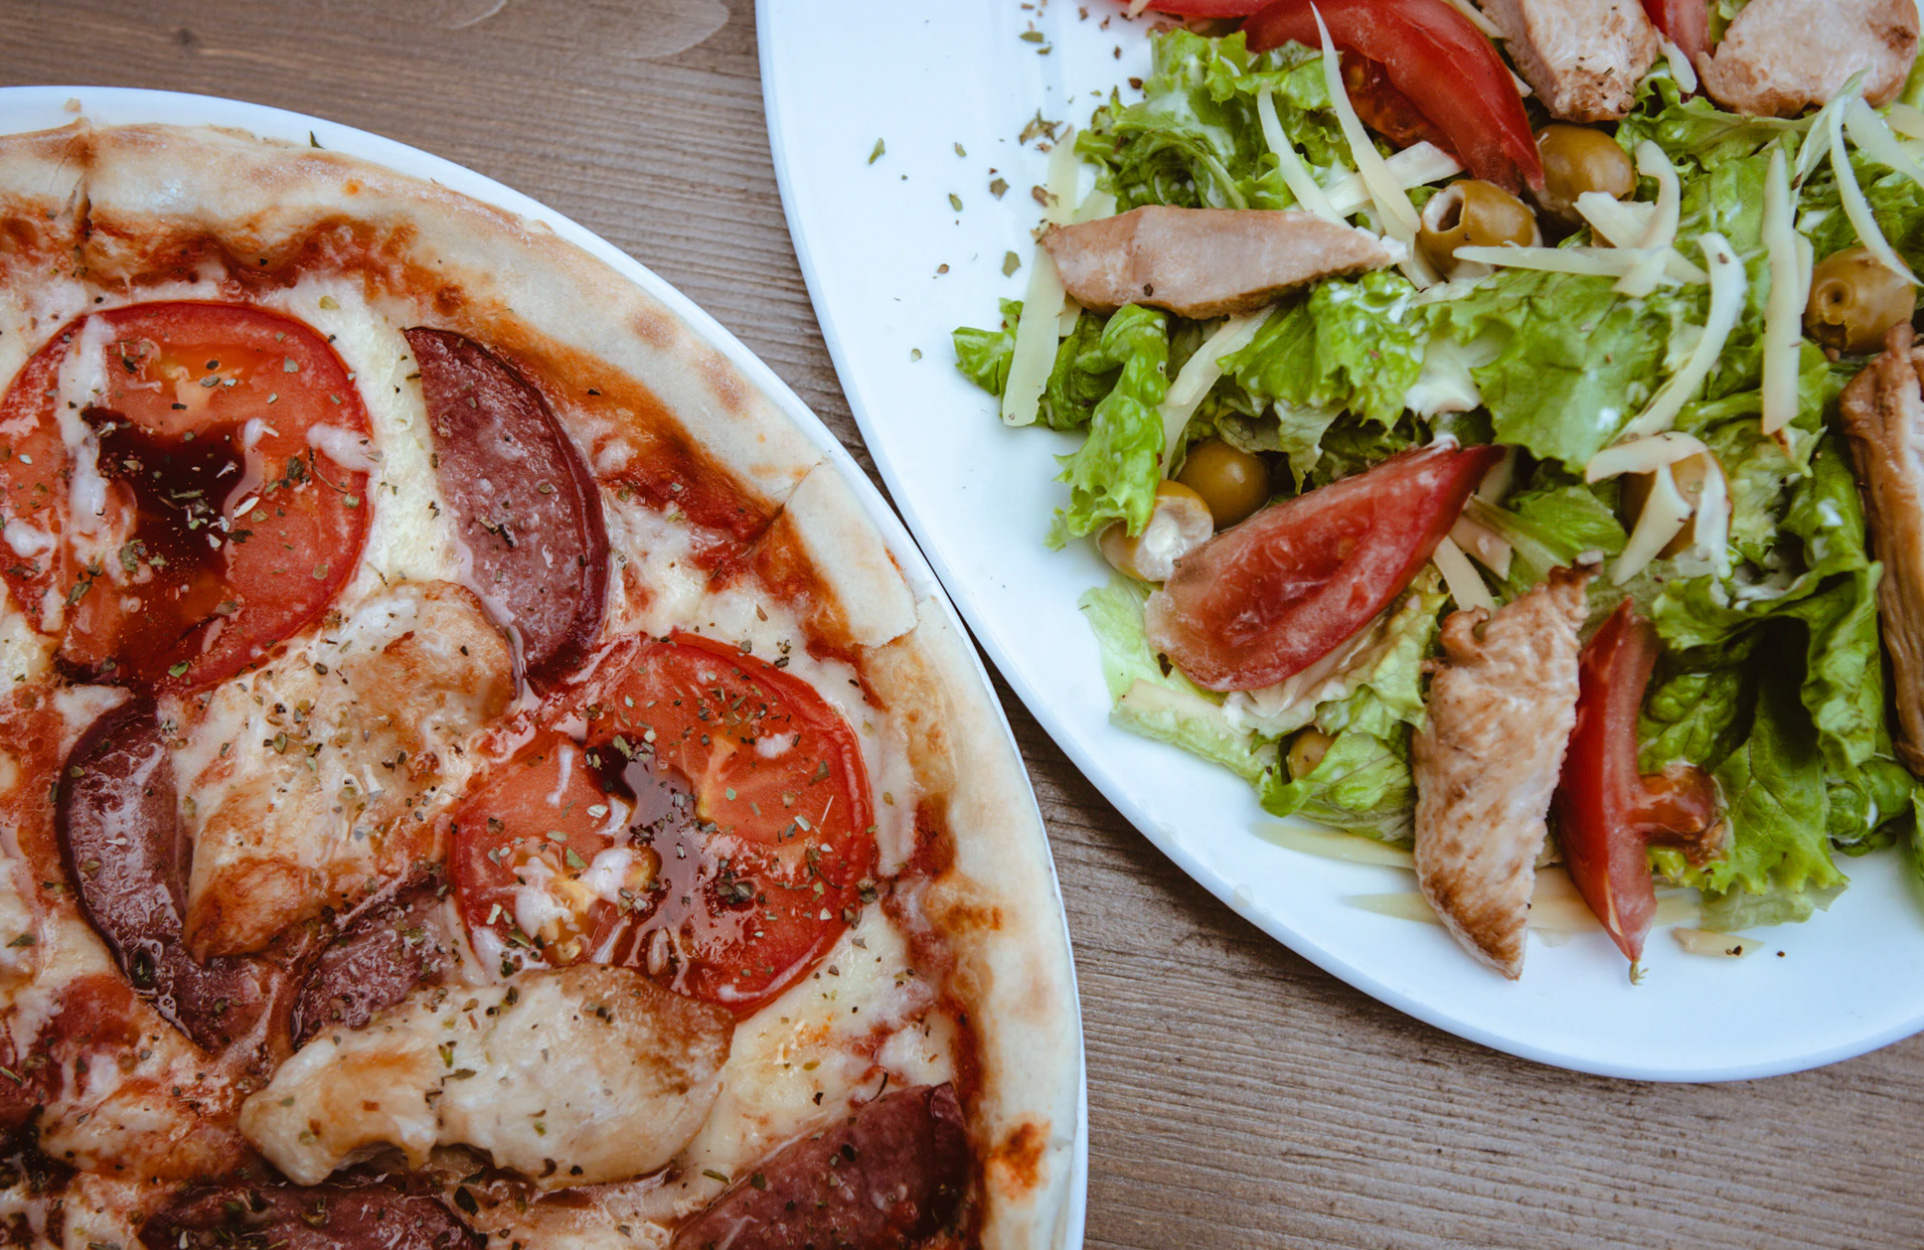 A table with pizza and salad.